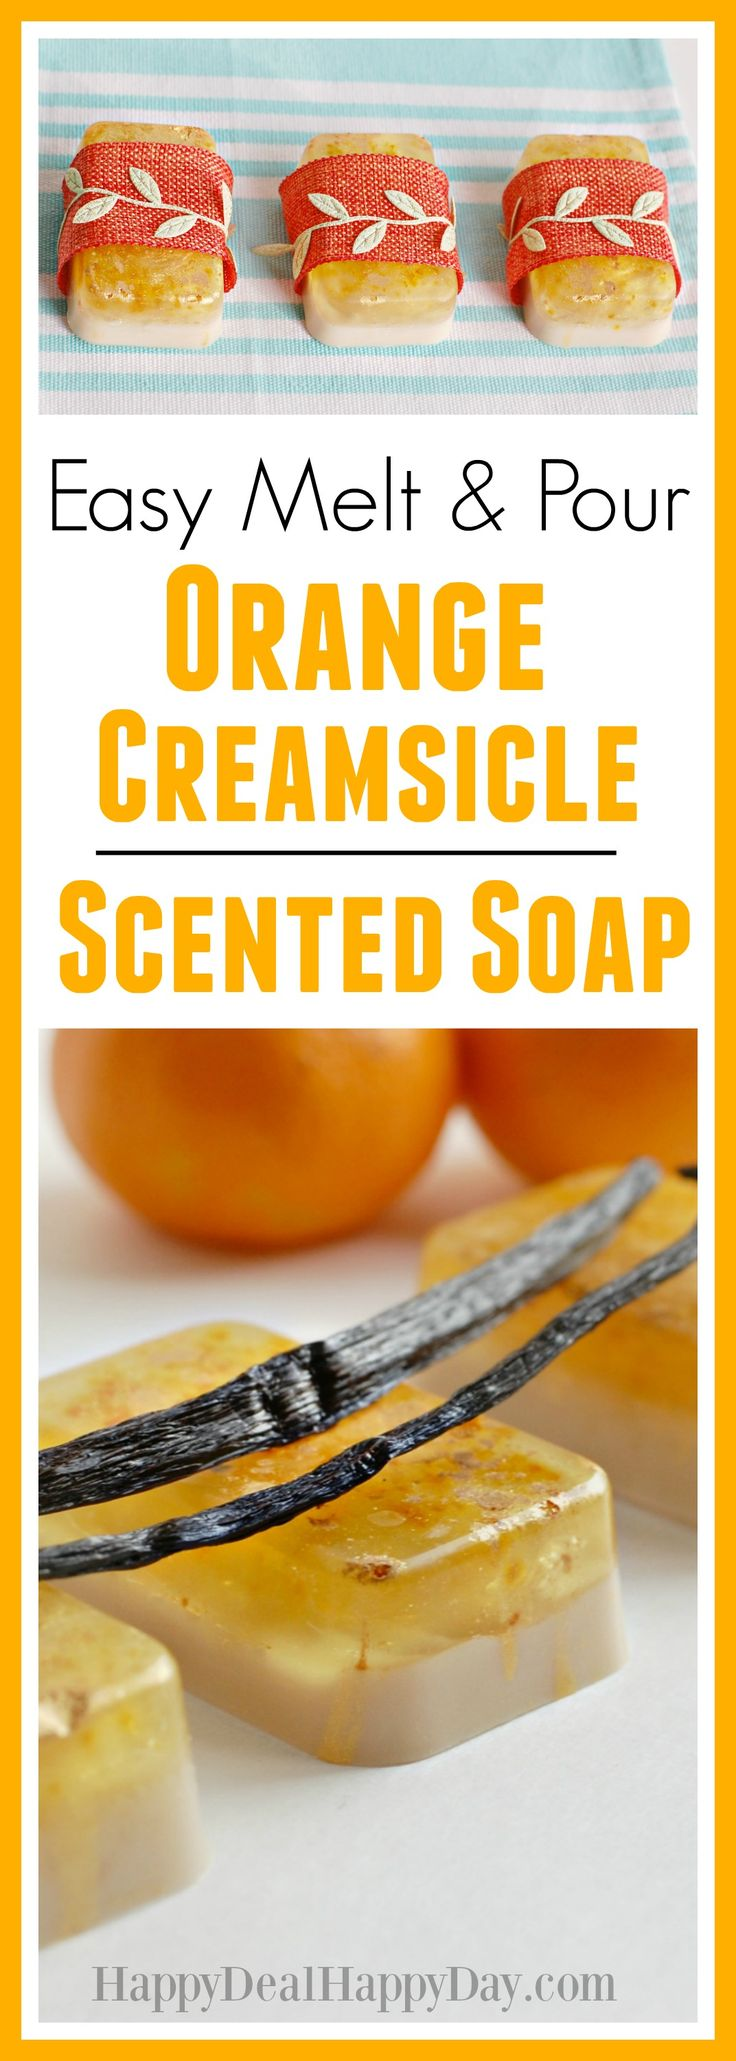 Easy Melt & Pour Orange Creamsicle Scented Soap - This is an easy way to make 12 bars in an hour - easier than you might think!